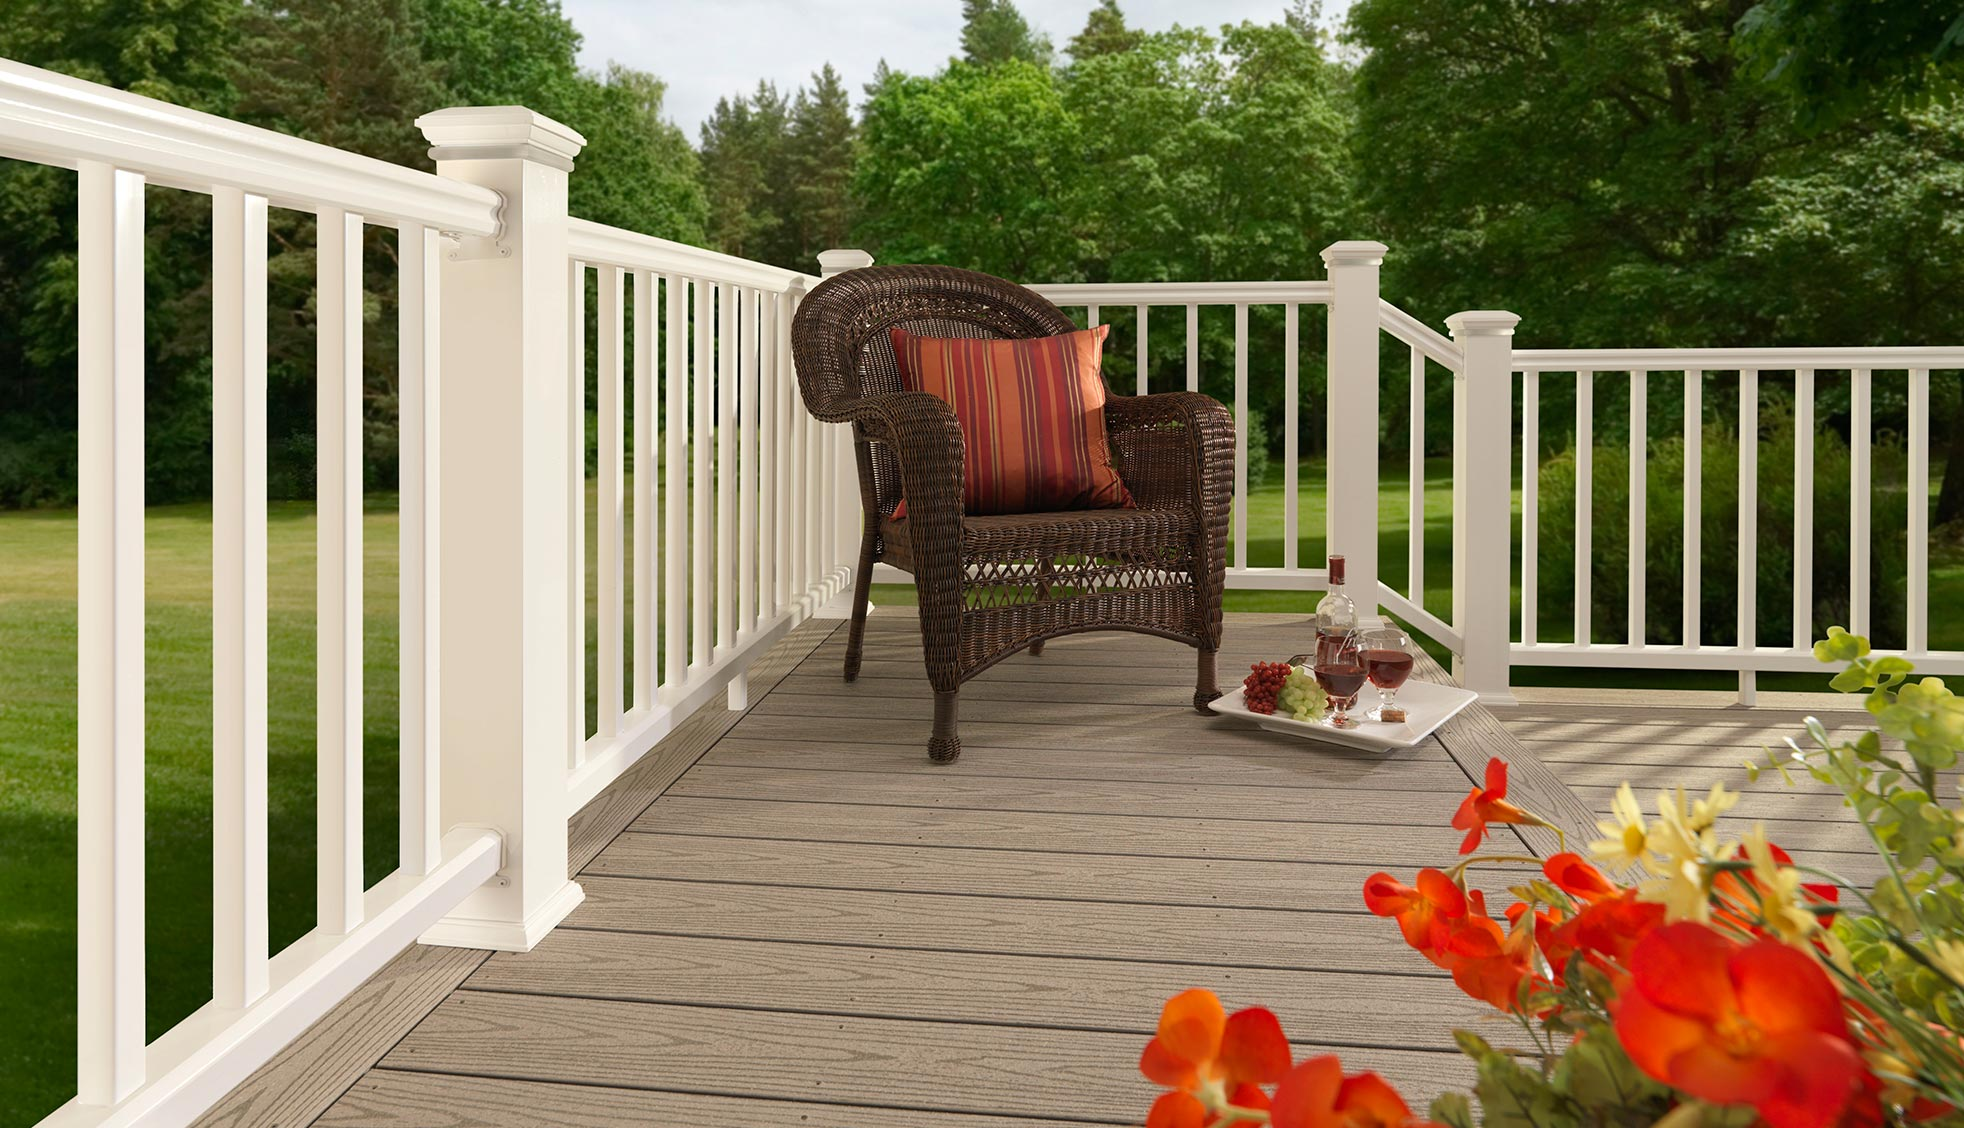 ADTG-TimberTech ReliaBoard Decking Collection in Gray